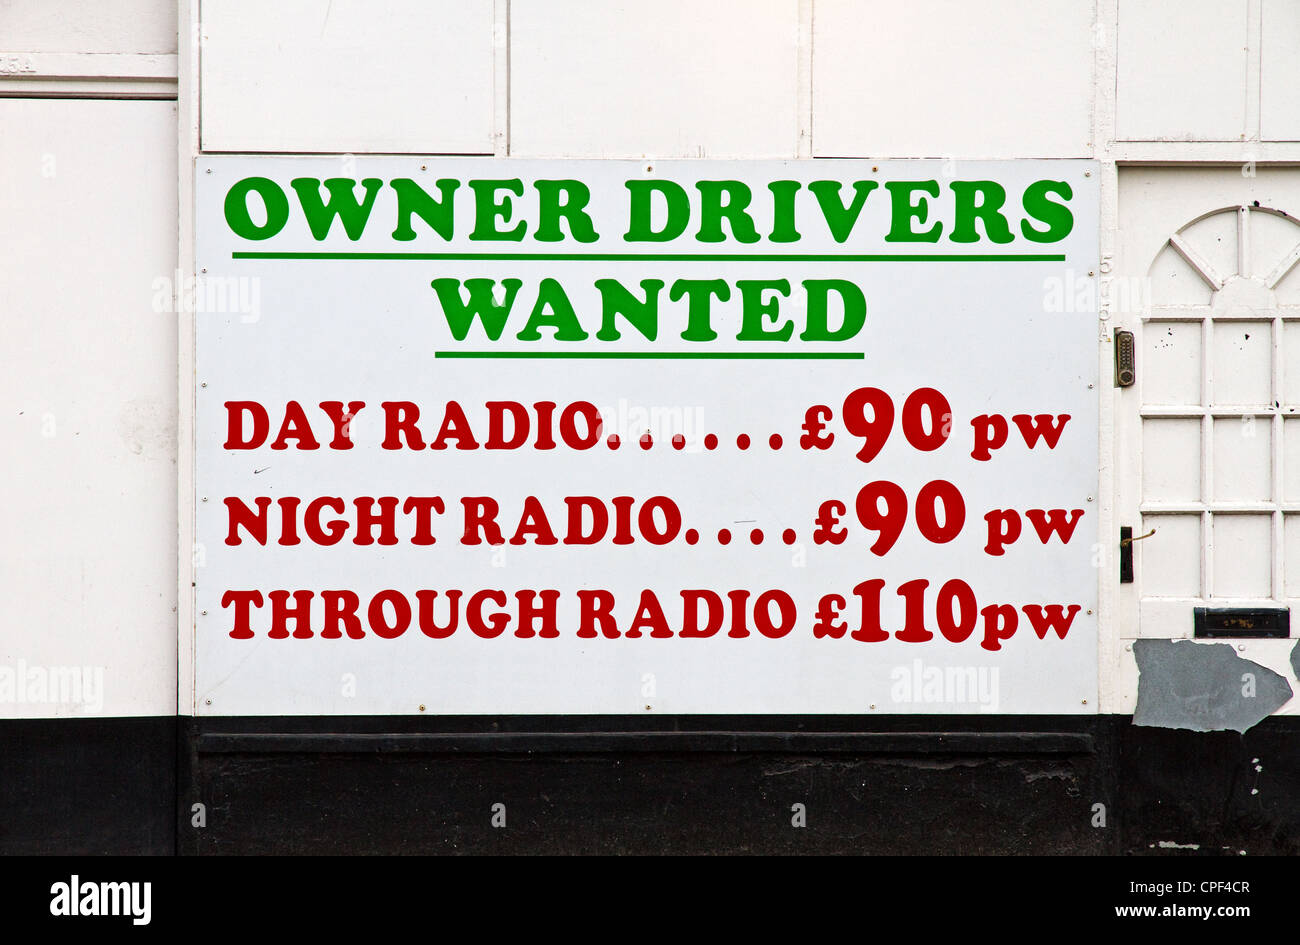 Private hire taxi owner drivers wanted sign, Irlam, Greater Manchester, England, UK - Stock Image